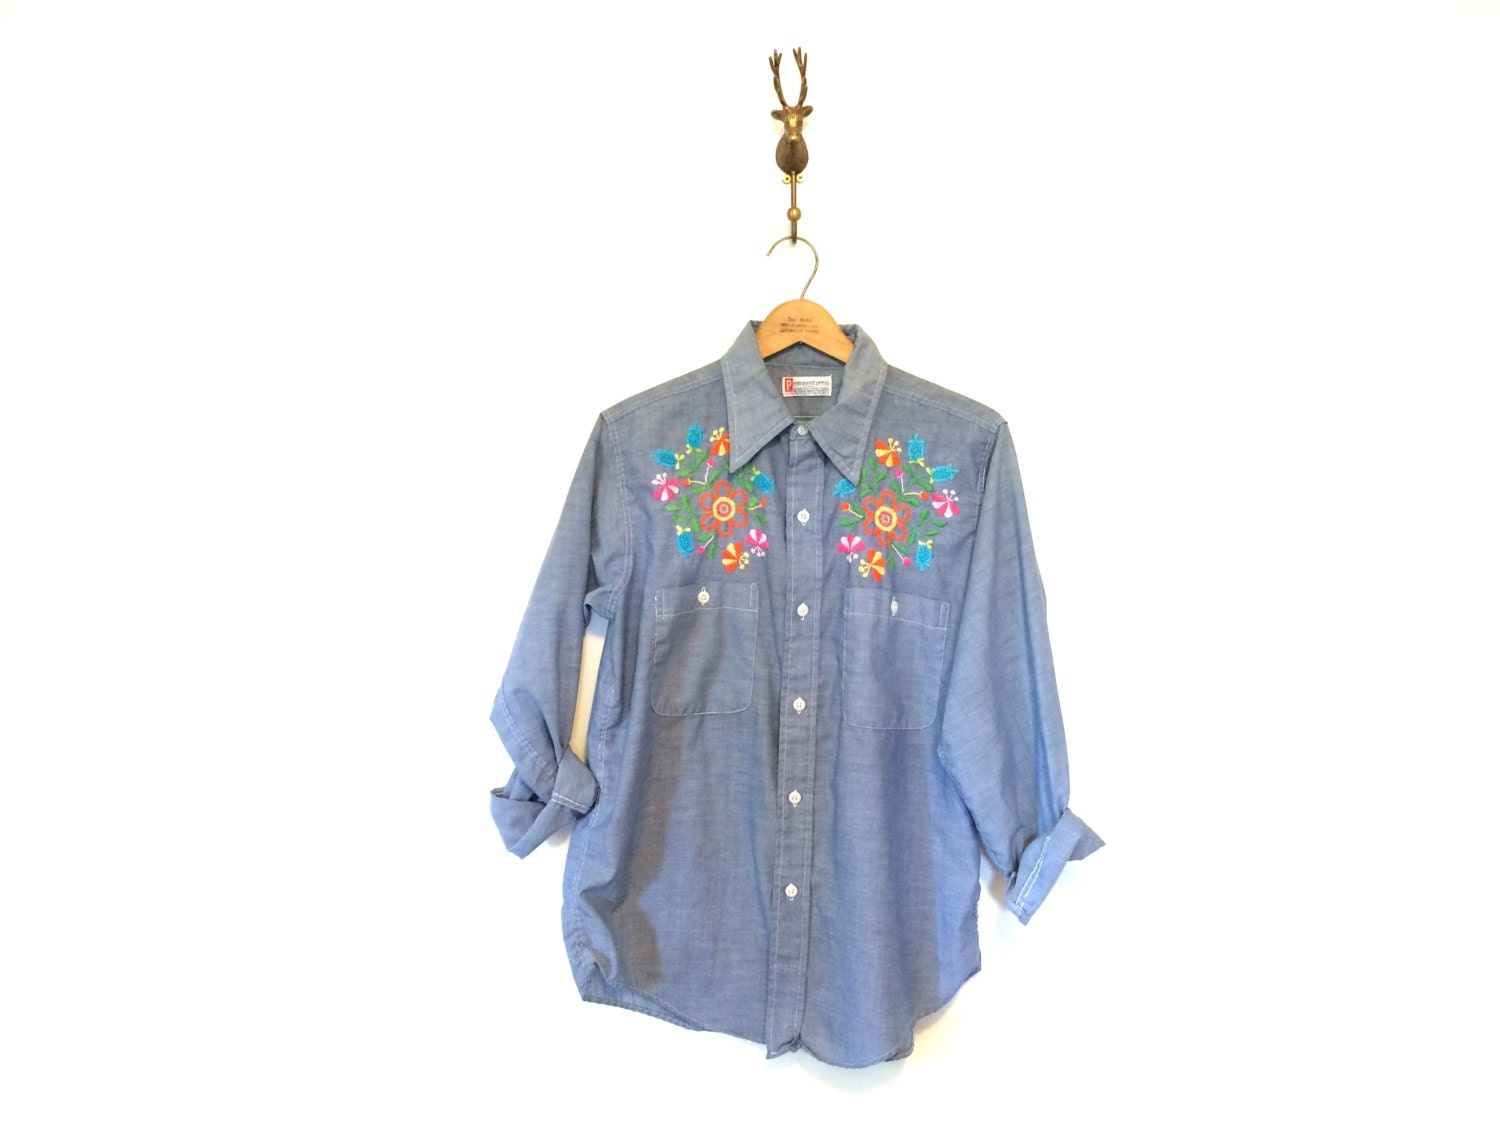 Embroidered chambray work shirt